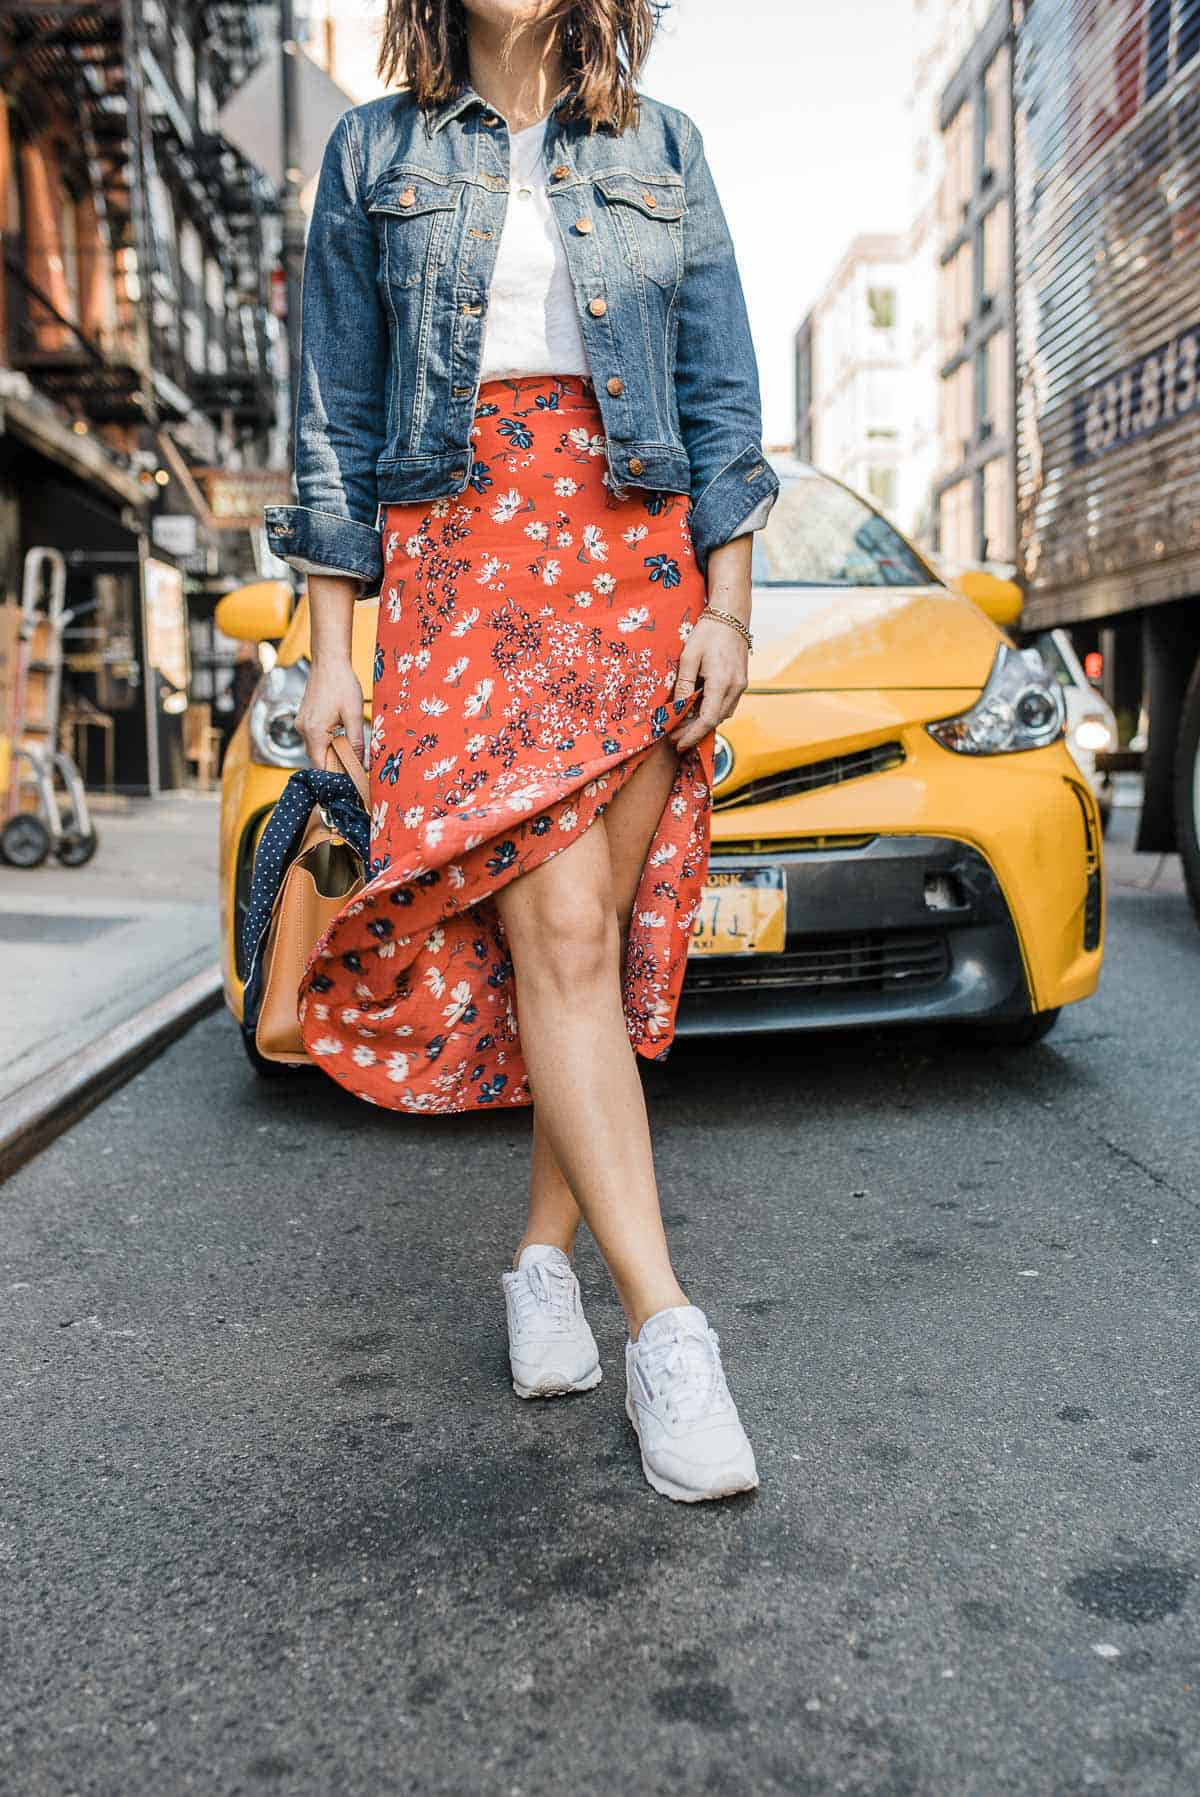 A denim jacket, white tee, floral skirt and white sneakers outfit.